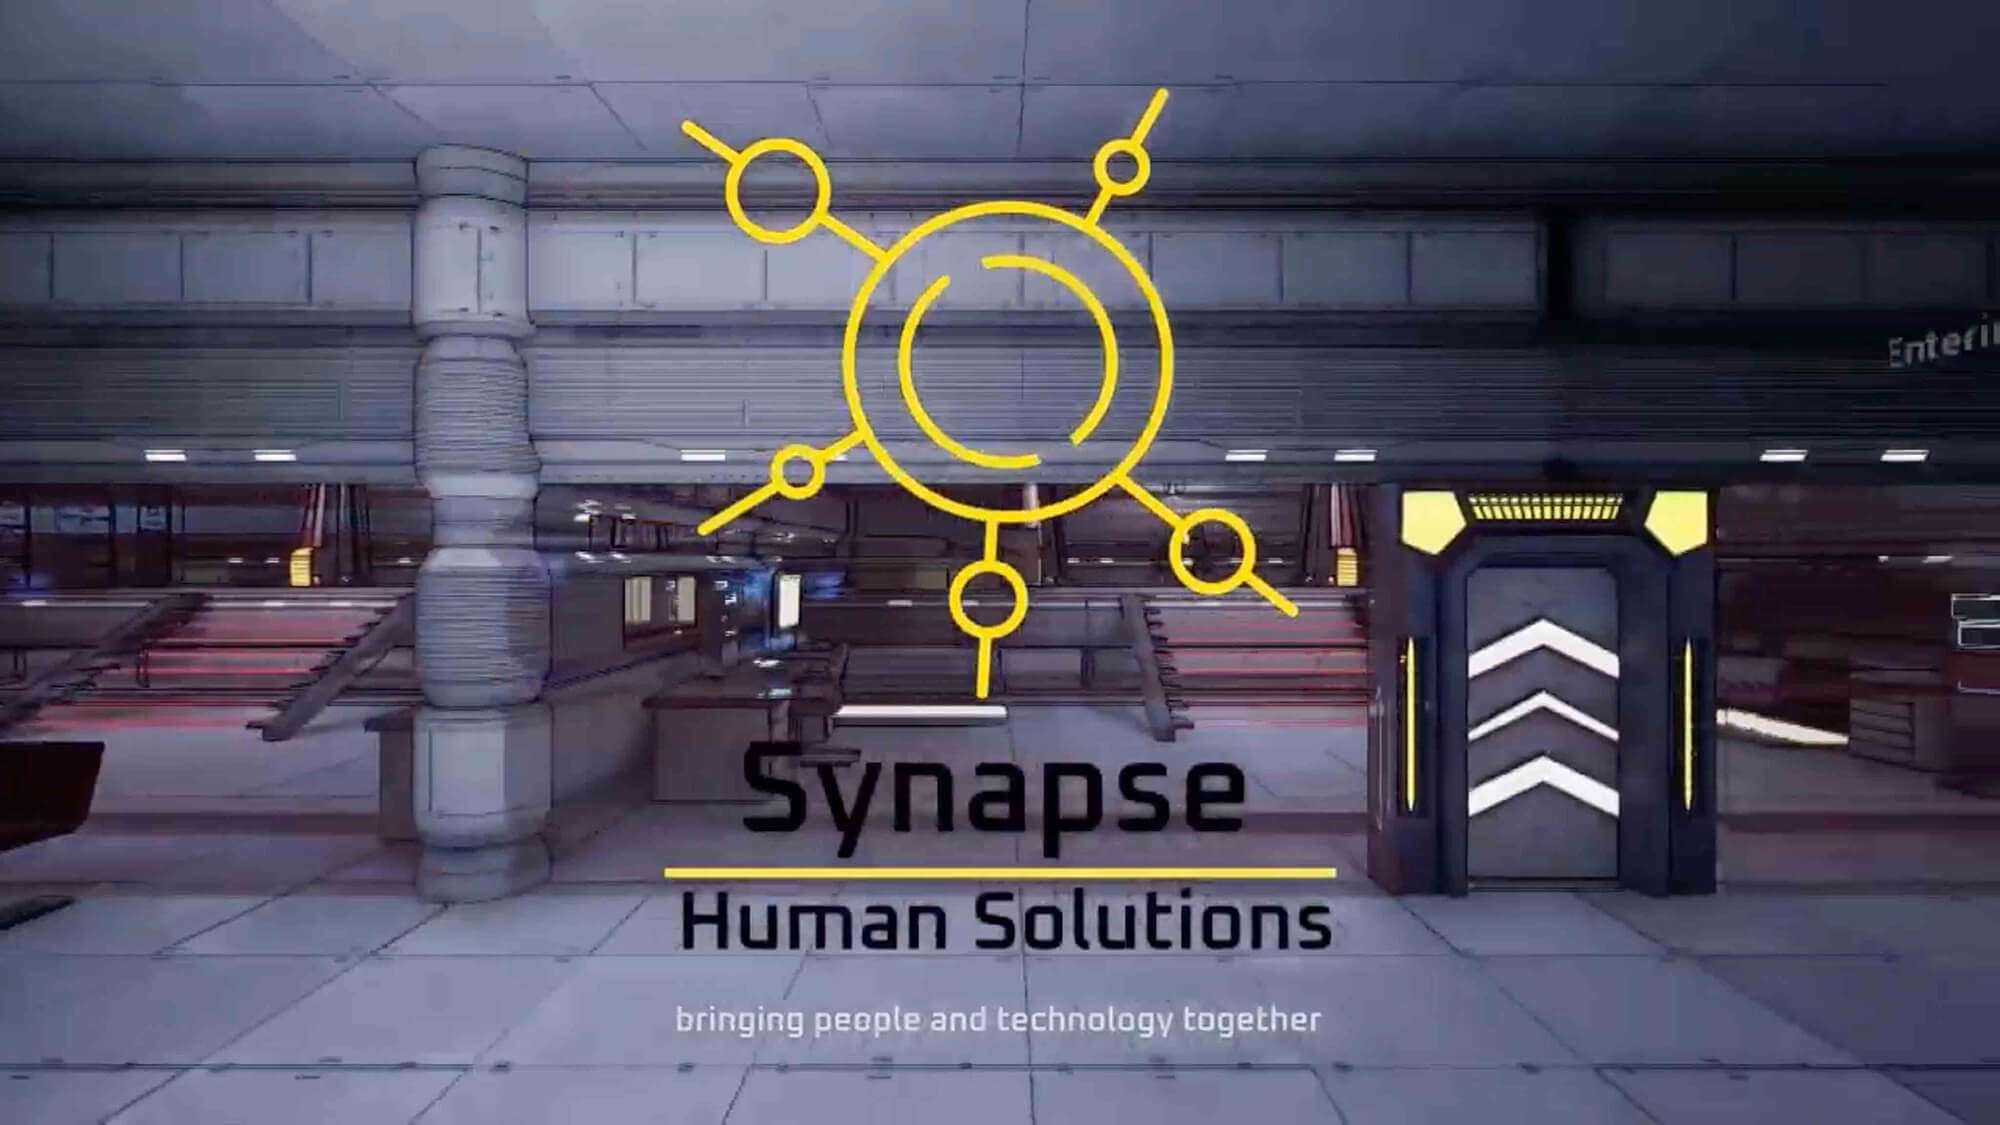 A futuristic industrial hallway with bays off it. Synapse Human Solutions logo. Text: bringing people and technology together